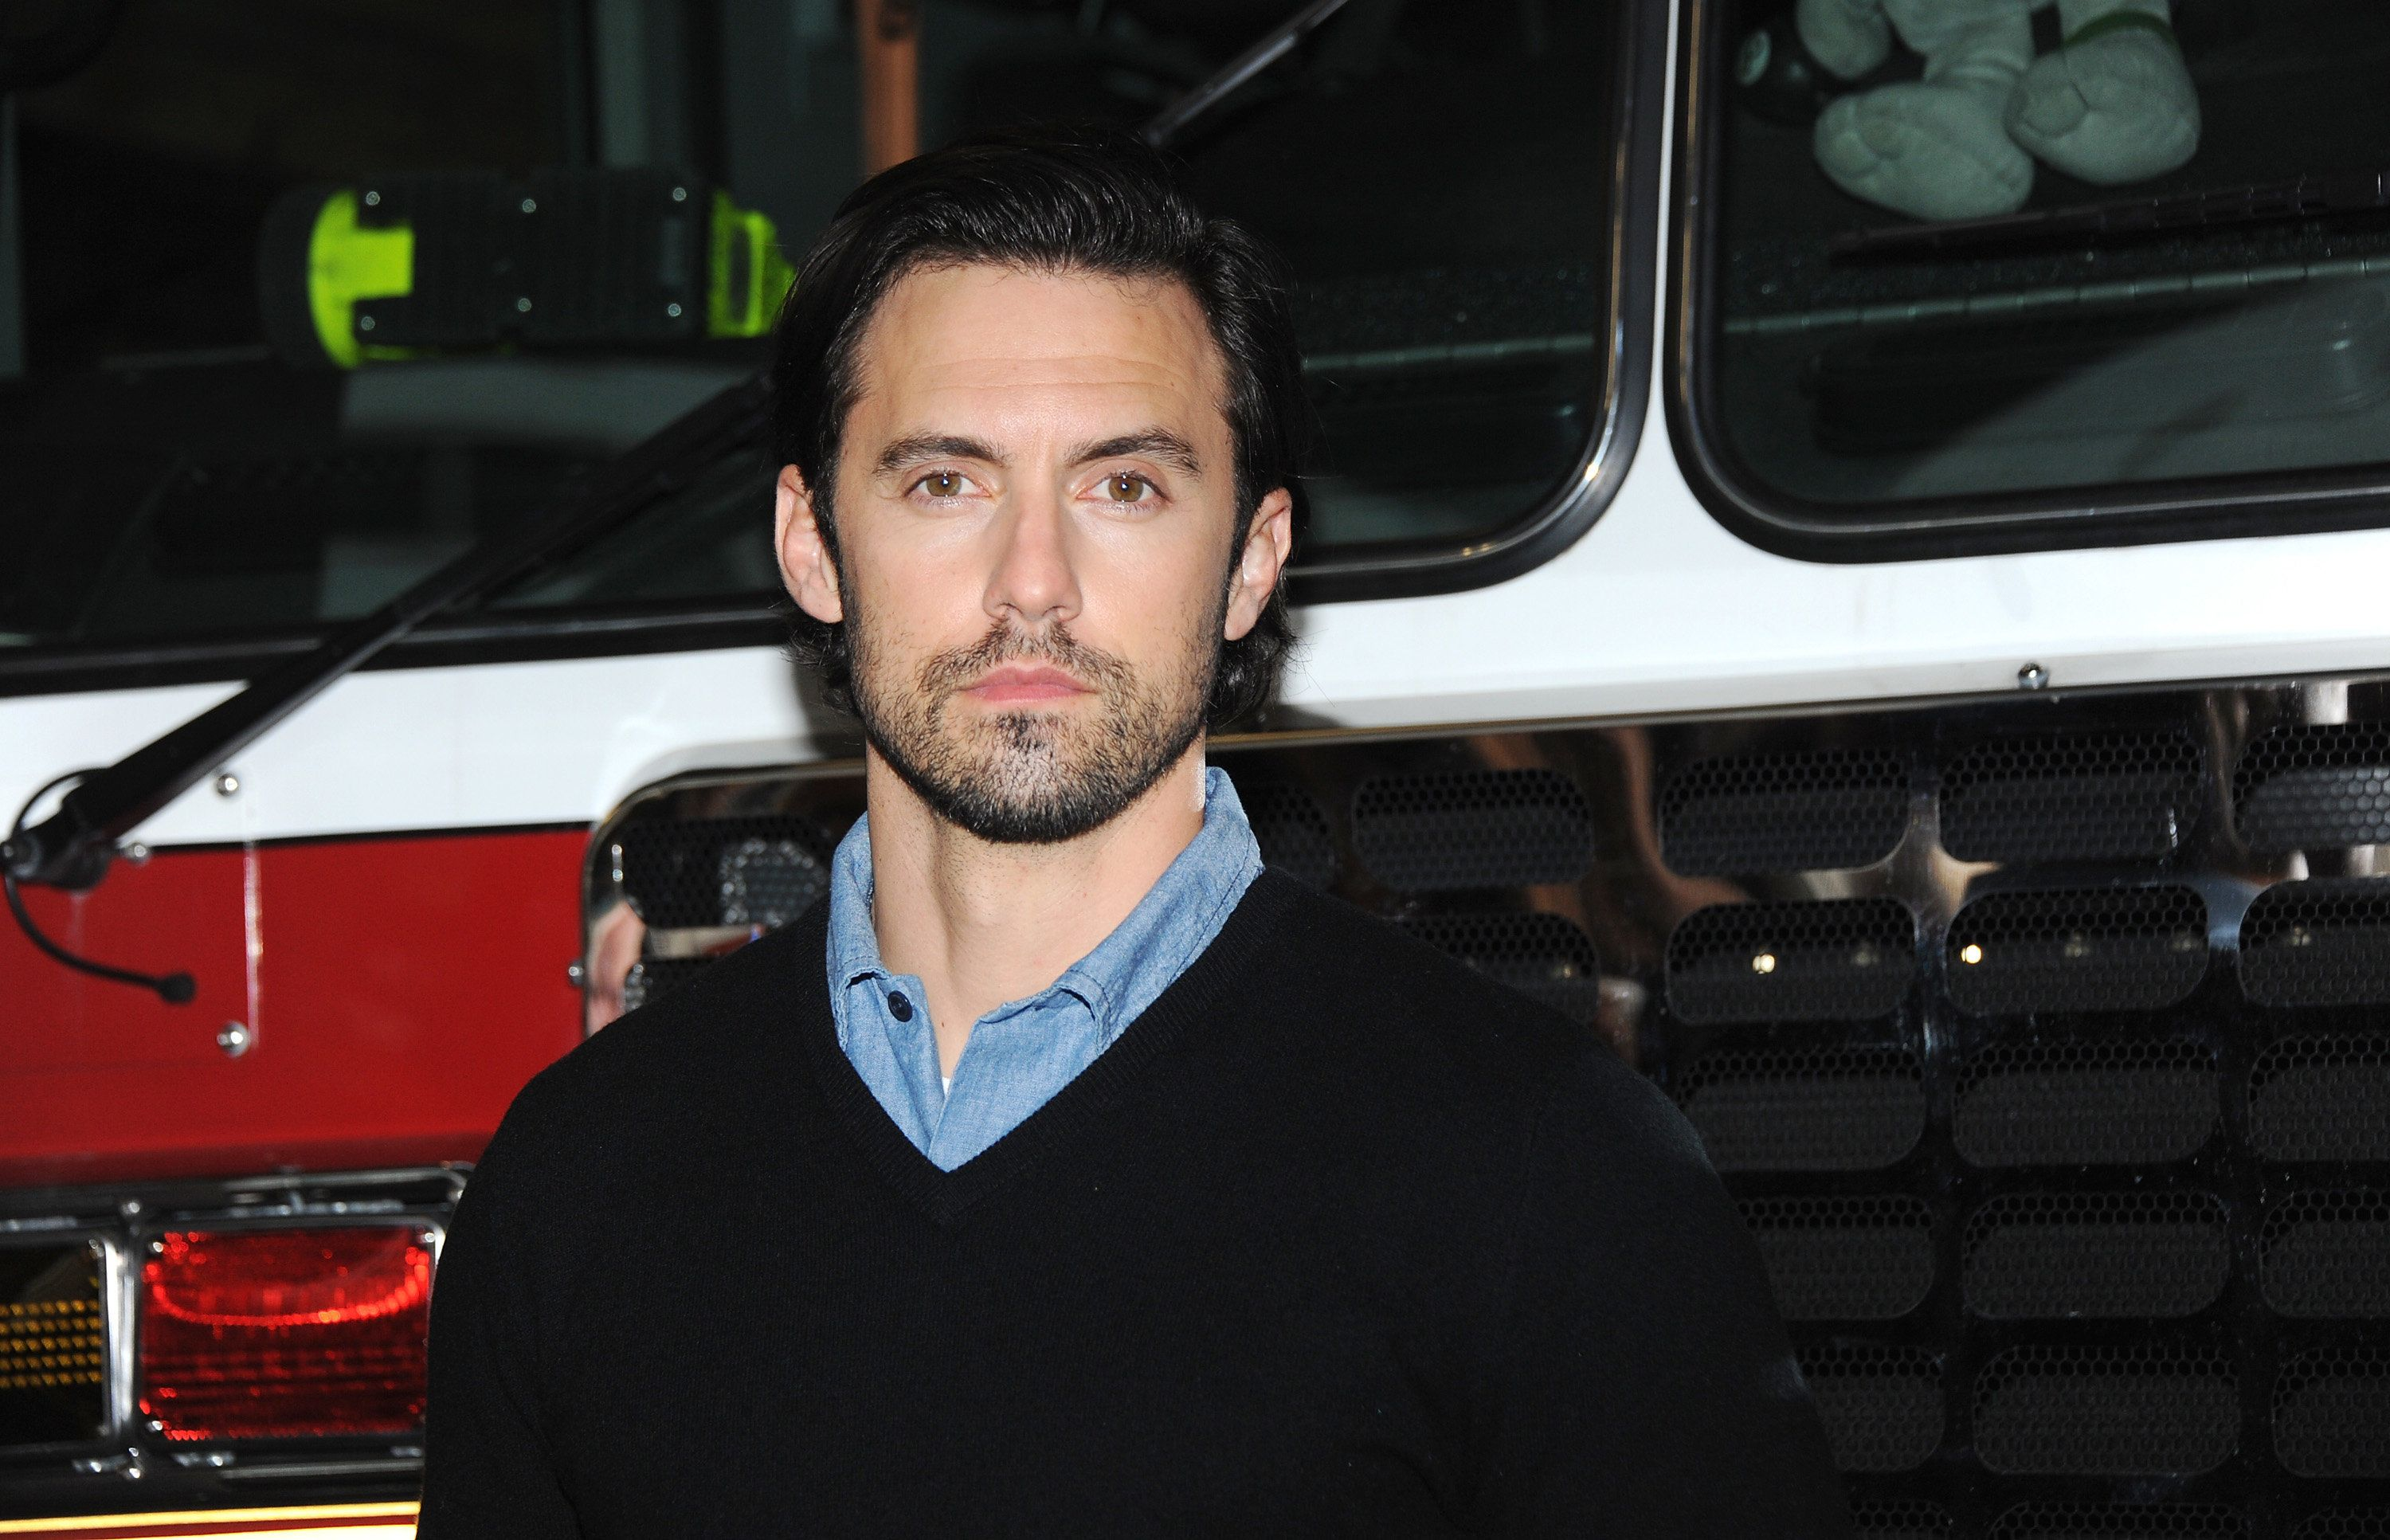 Milo Ventimiglia Prepares Followers For An Older Jack On 'This Is Us'